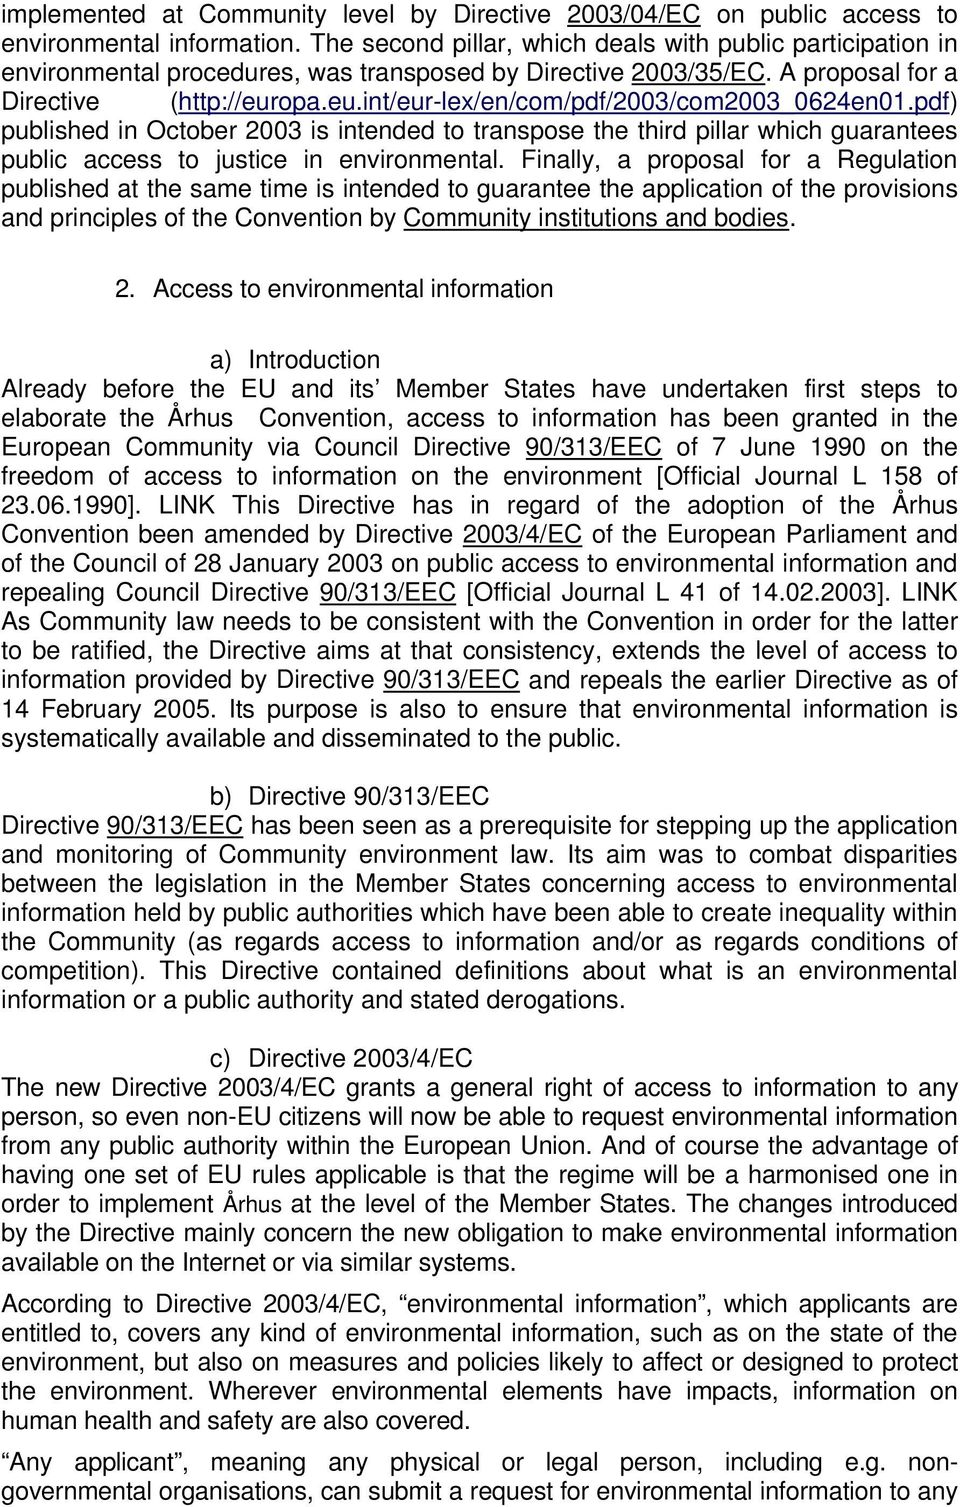 opa.eu.int/eur-lex/en/com/pdf/2003/com2003_0624en01.pdf) published in October 2003 is intended to transpose the third pillar which guarantees public access to justice in environmental.